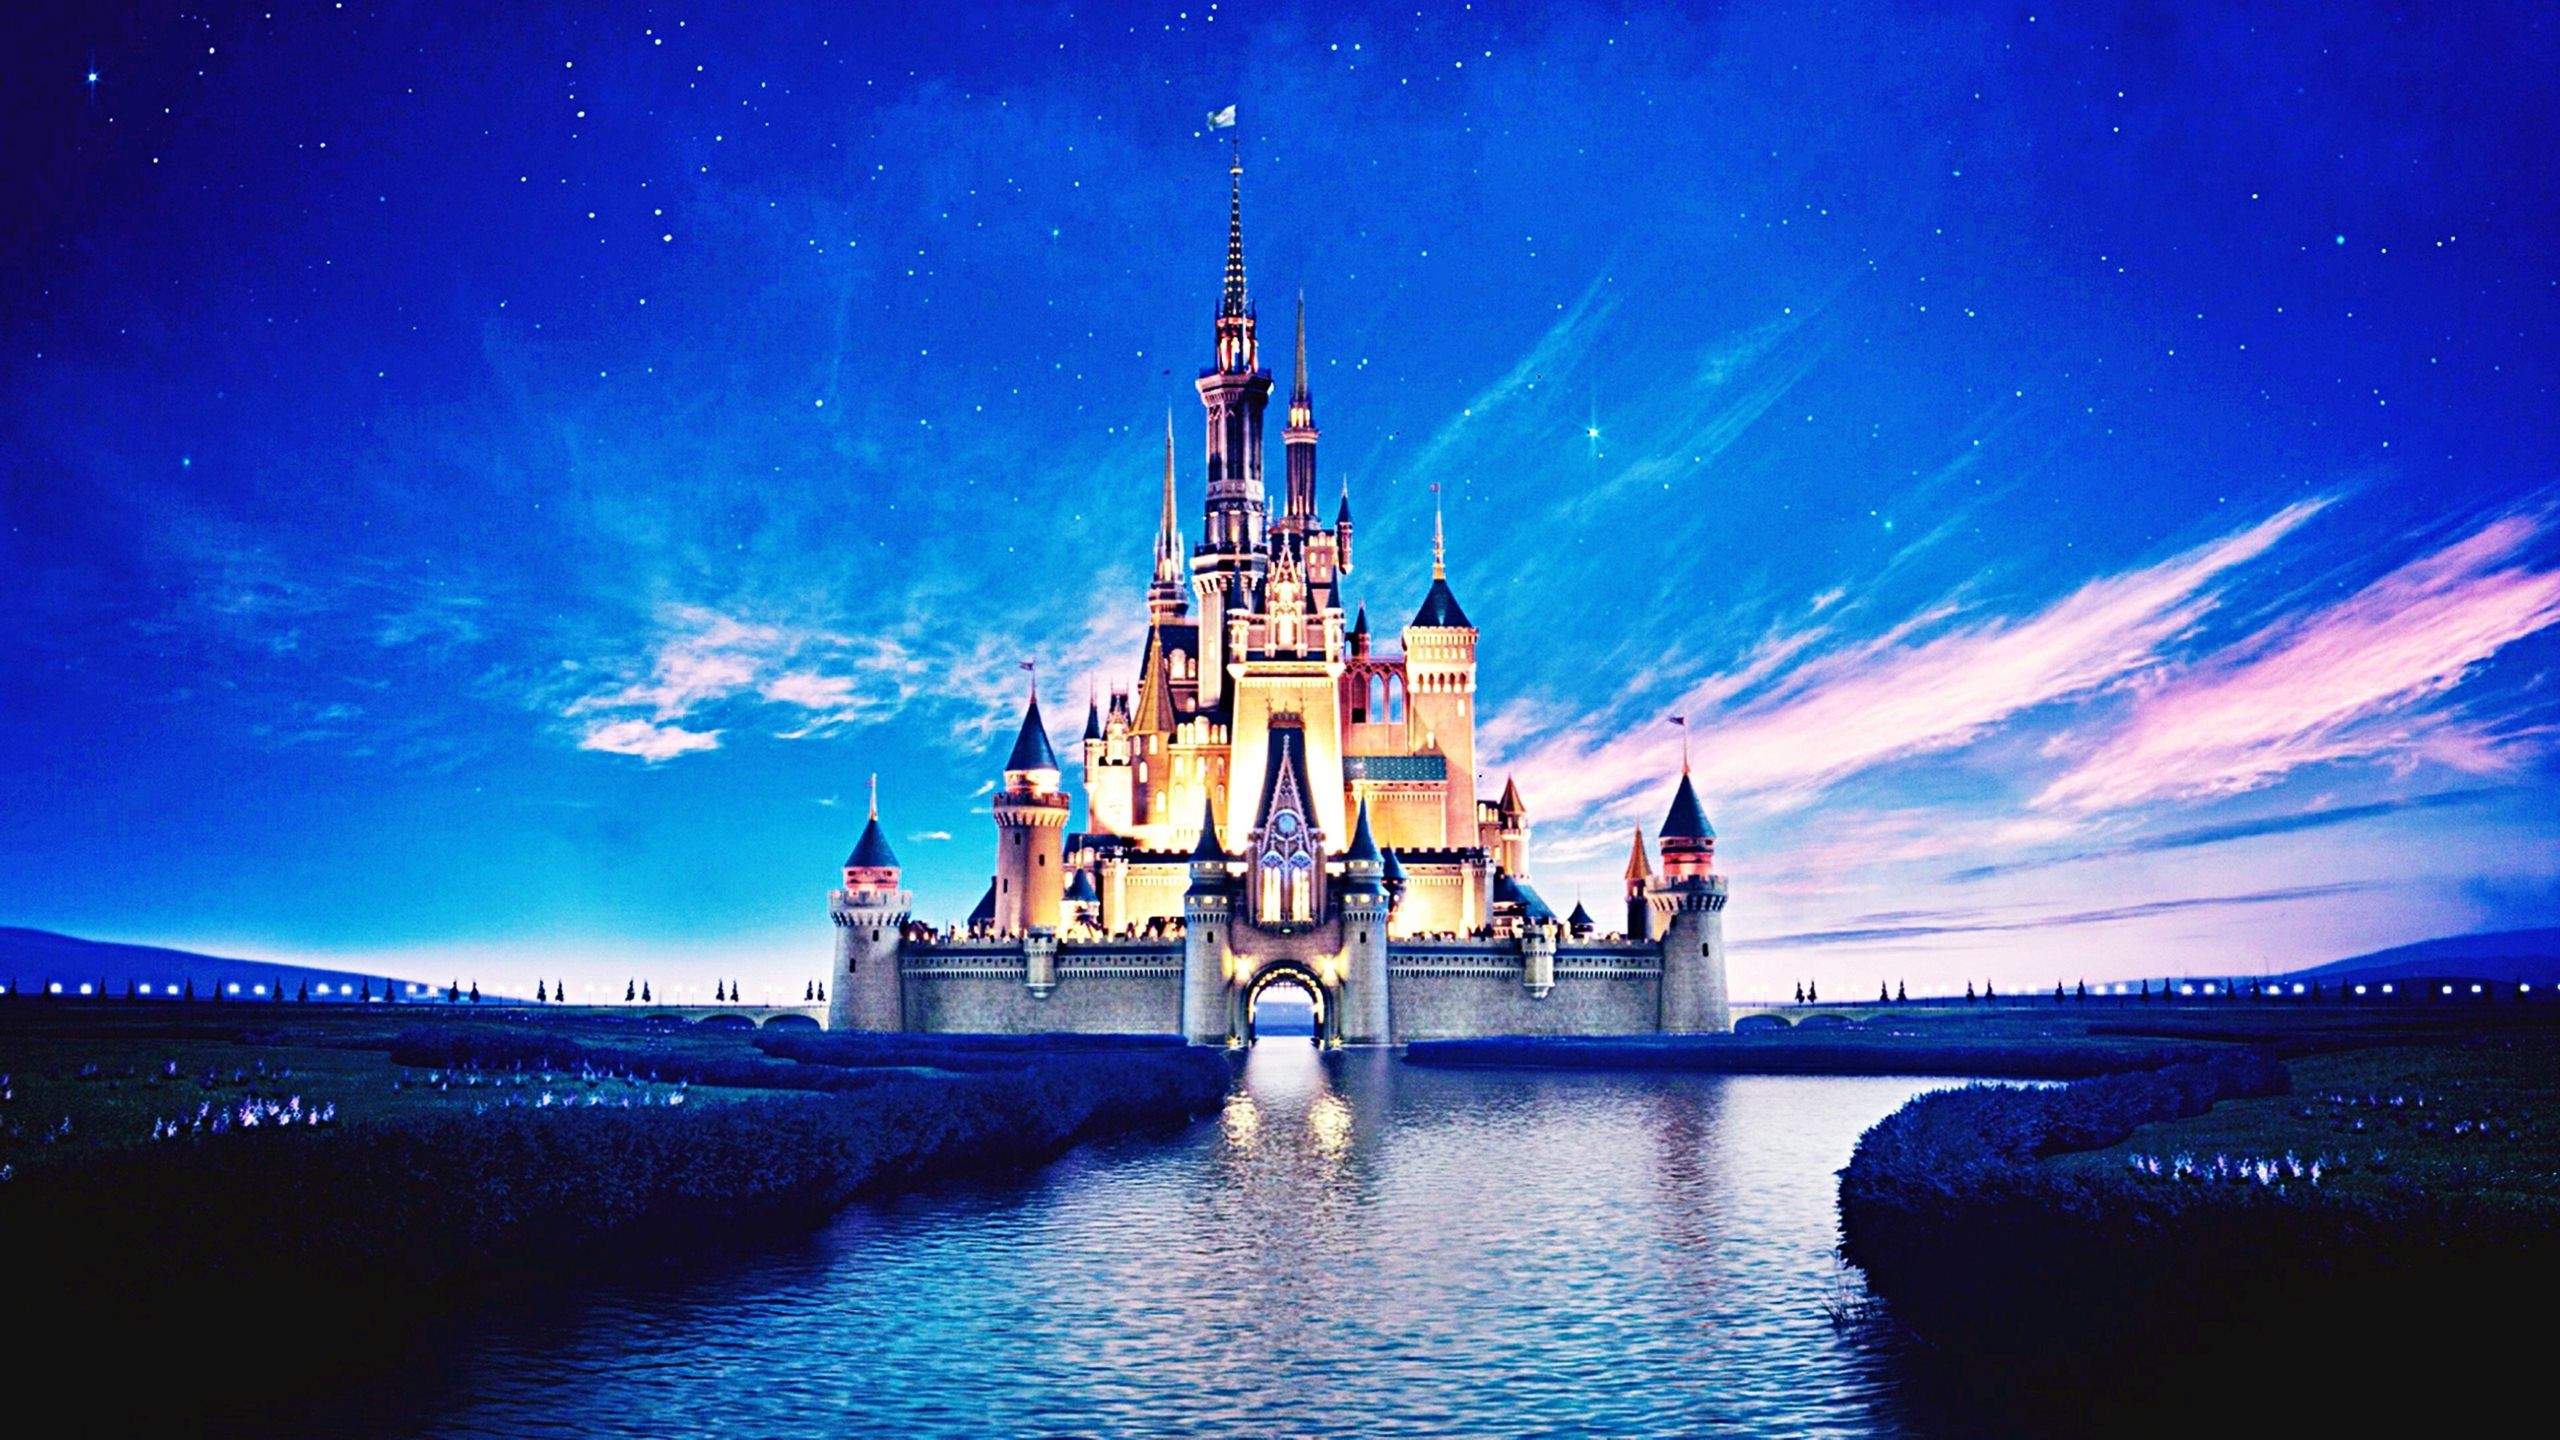 euro disney from dream to nightmare Euro disney from dream to nightmare group 5 presentattion evaluate disney's decision to build a theme park in europeit has large population and there is a longer vocation time in europe countries.